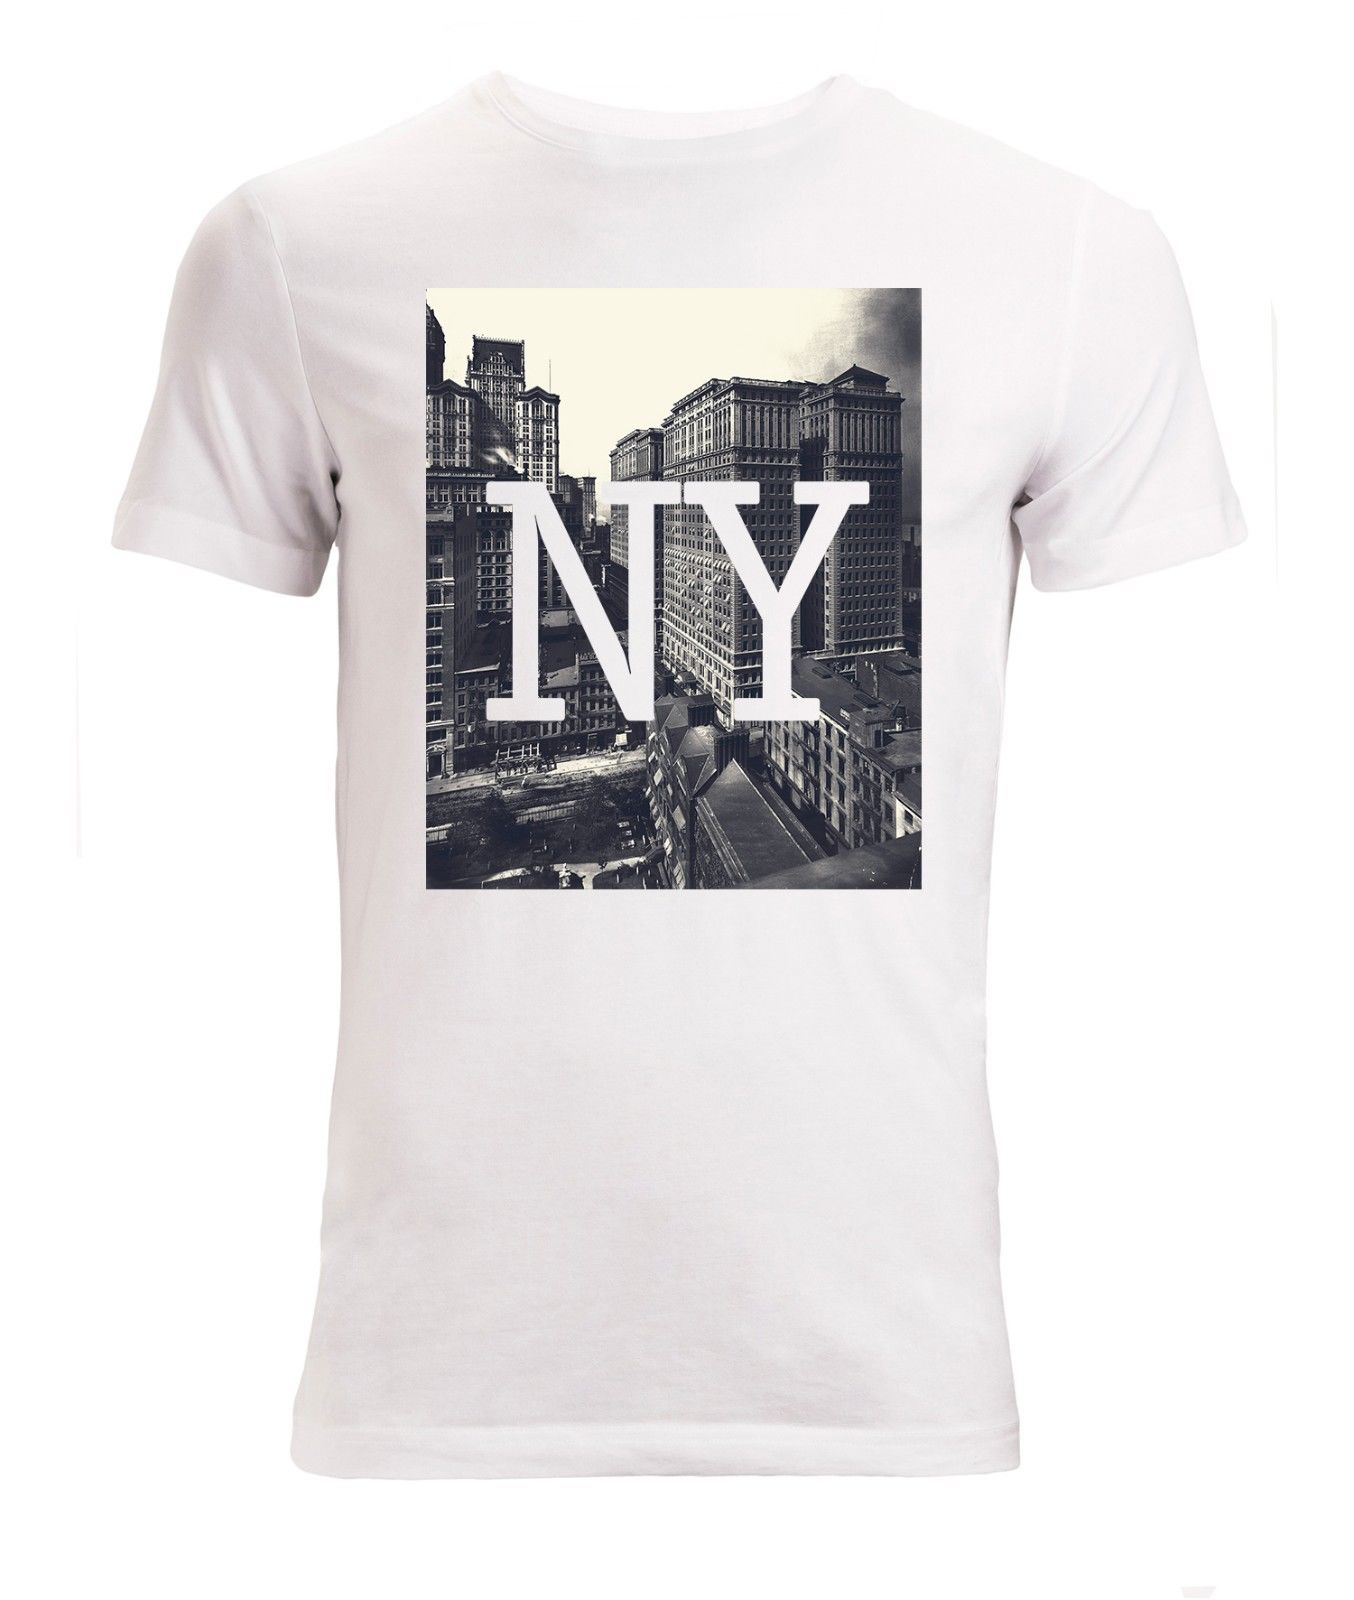 NY New York Skyscrapers Styled Art mens (womans available) t shirt white top